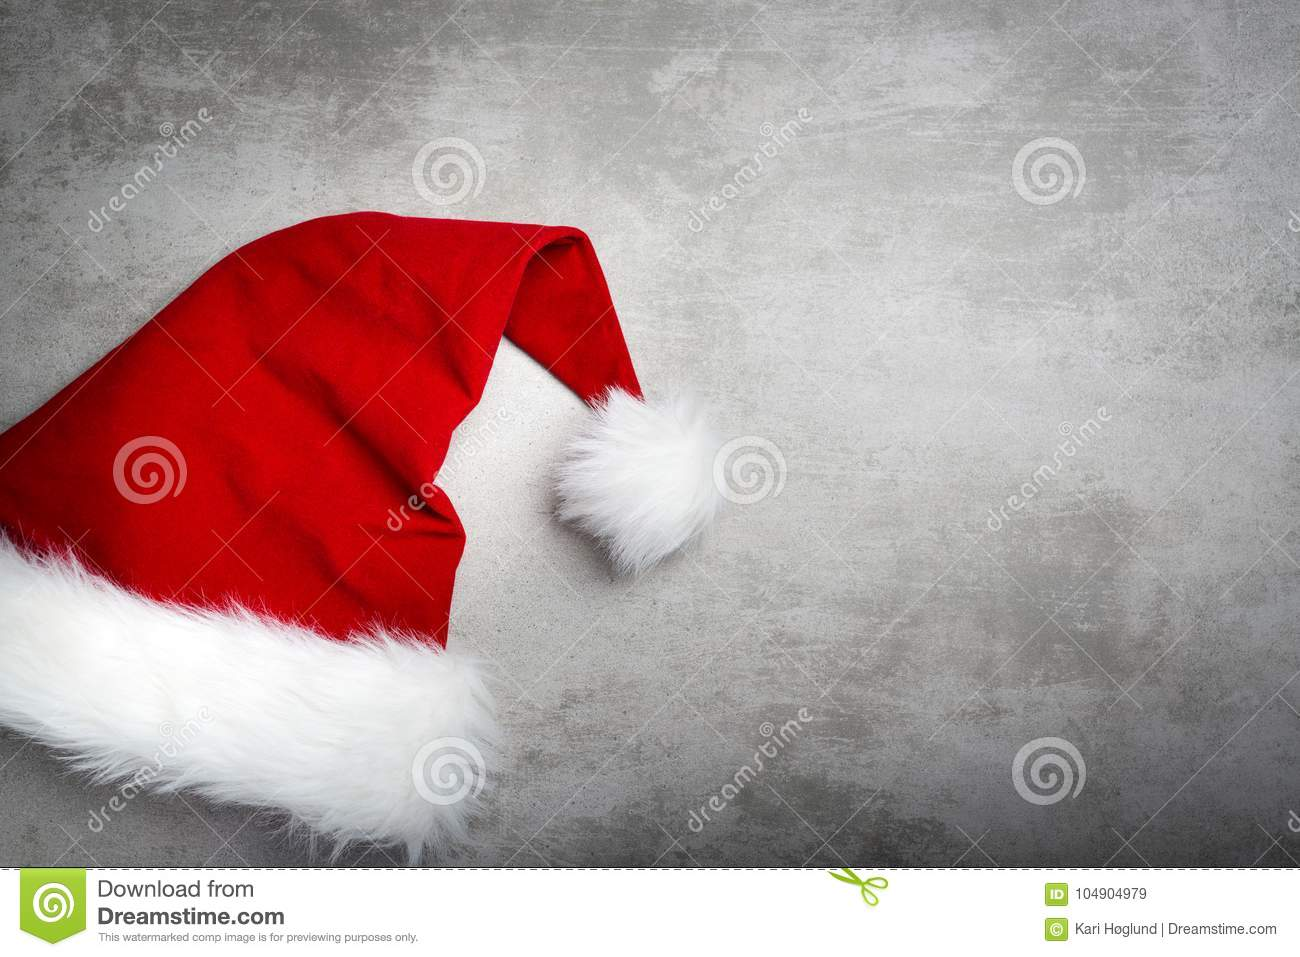 Red santa hat on a gray concrete table